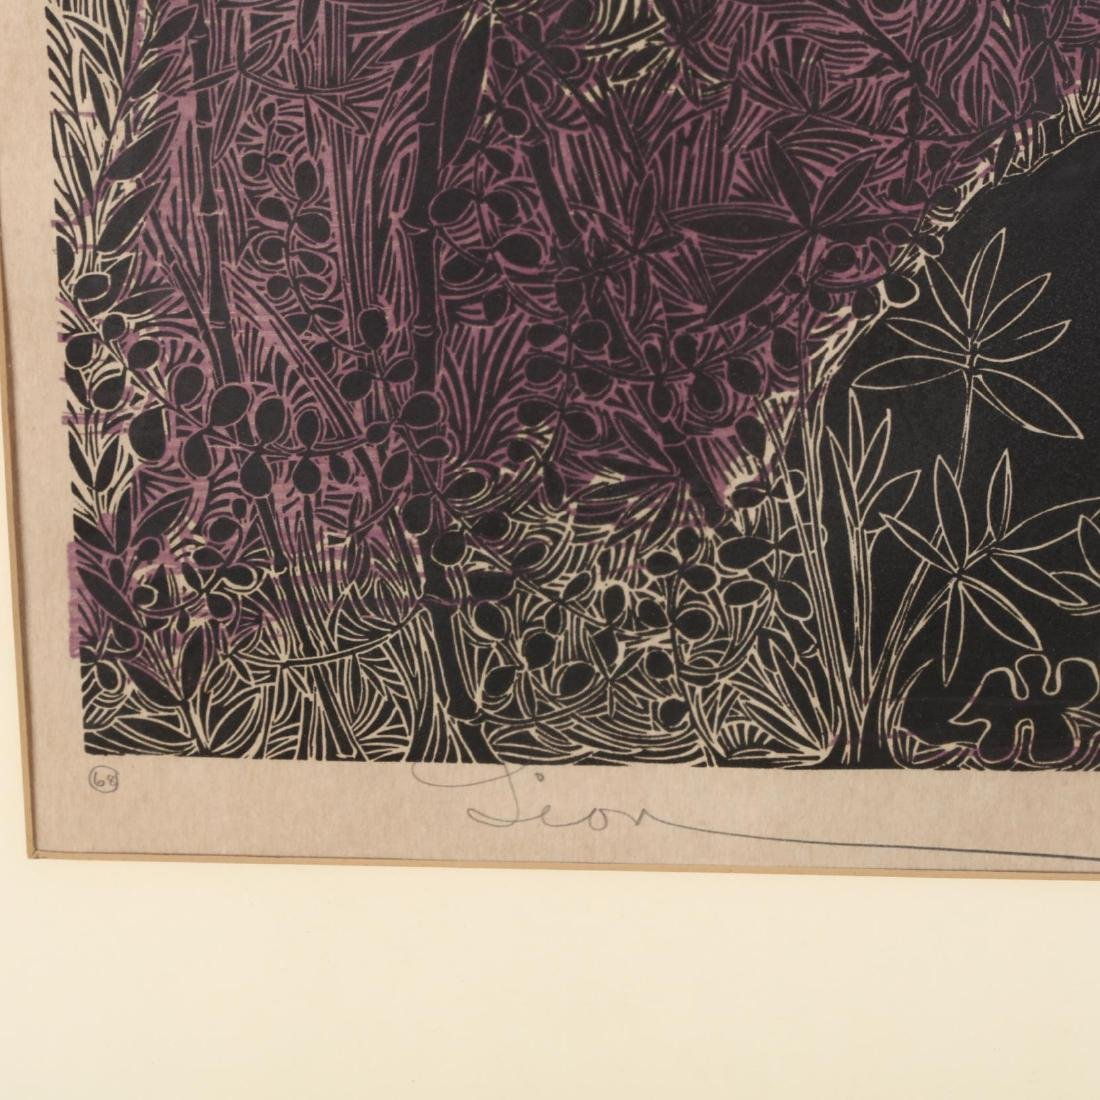 Two 20th Century Woodblock Prints - Elizabeth Wolf and - 4